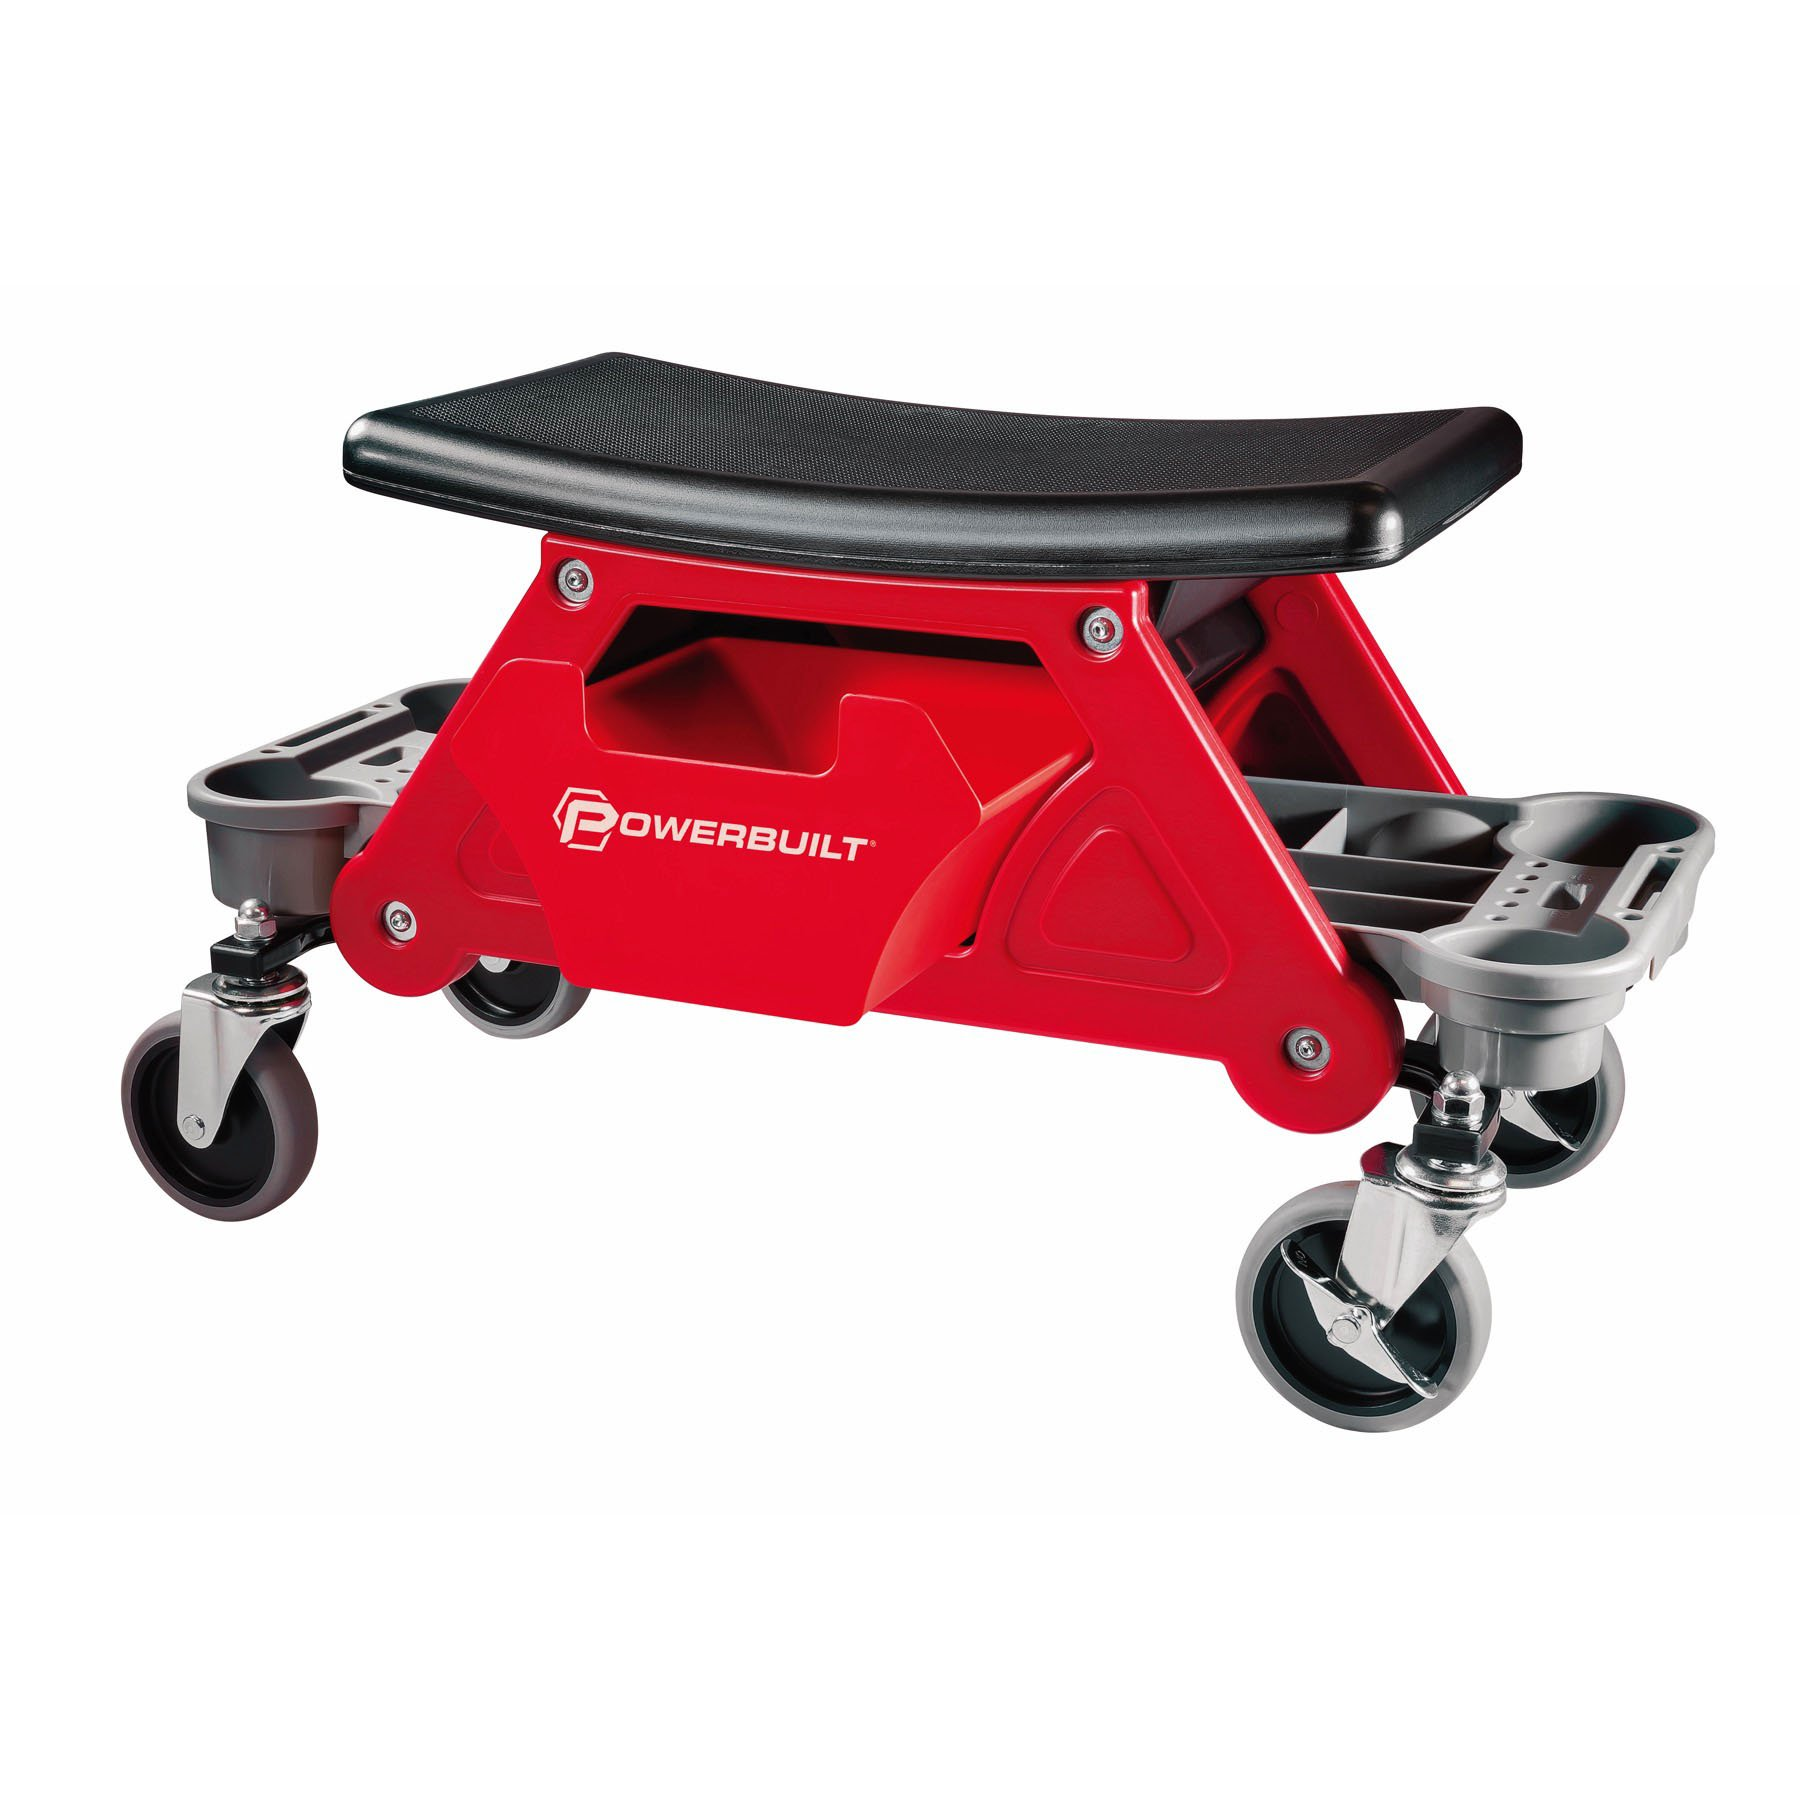 Powerbuilt Heavy Duty Rolling Mechanics Seat Brake Stool 300lb Capacity - 240036 (Stool)